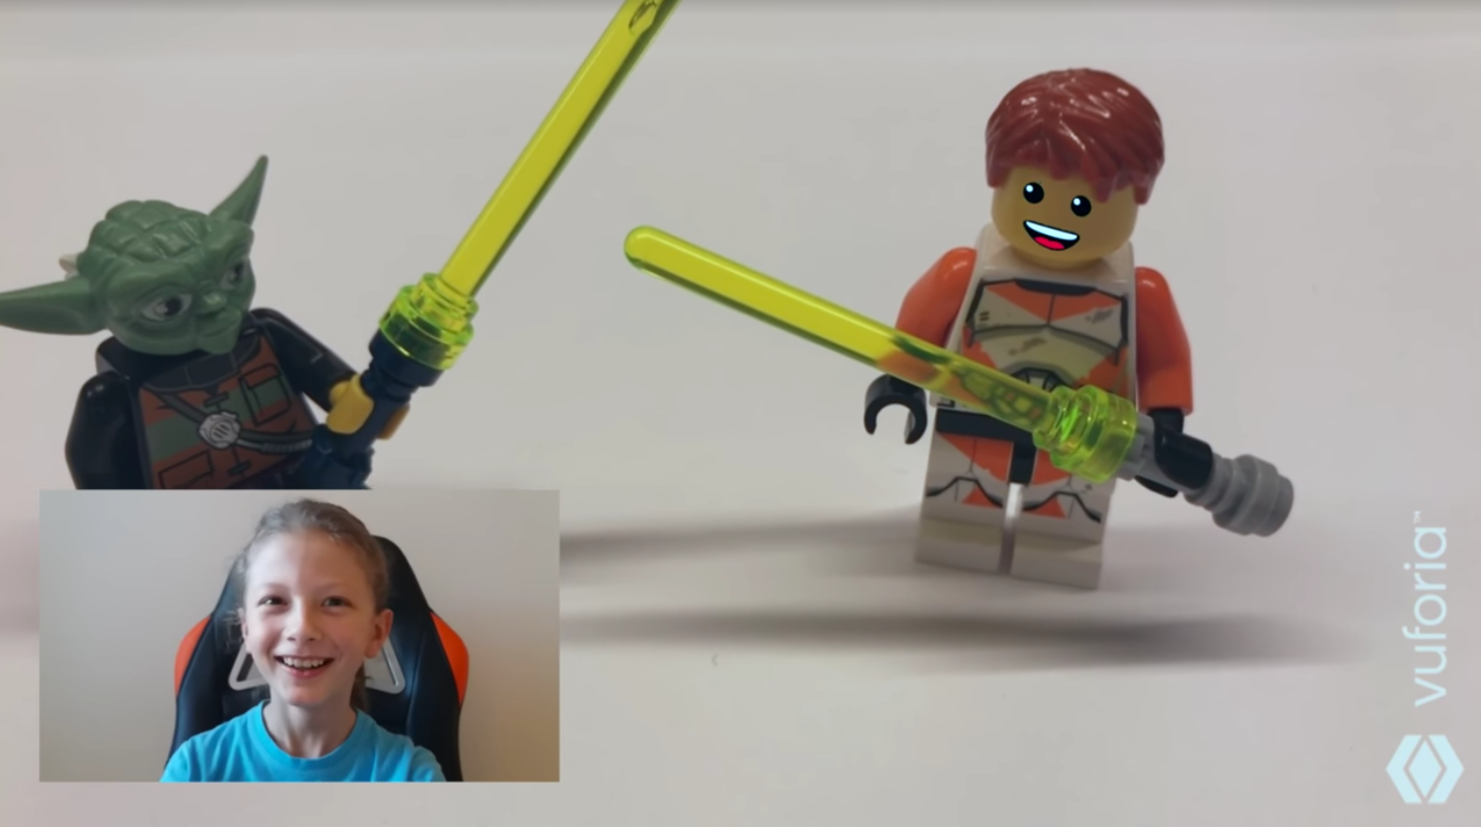 SDK on the Spot: Bringing LEGO toys to Life with Emotion in AR